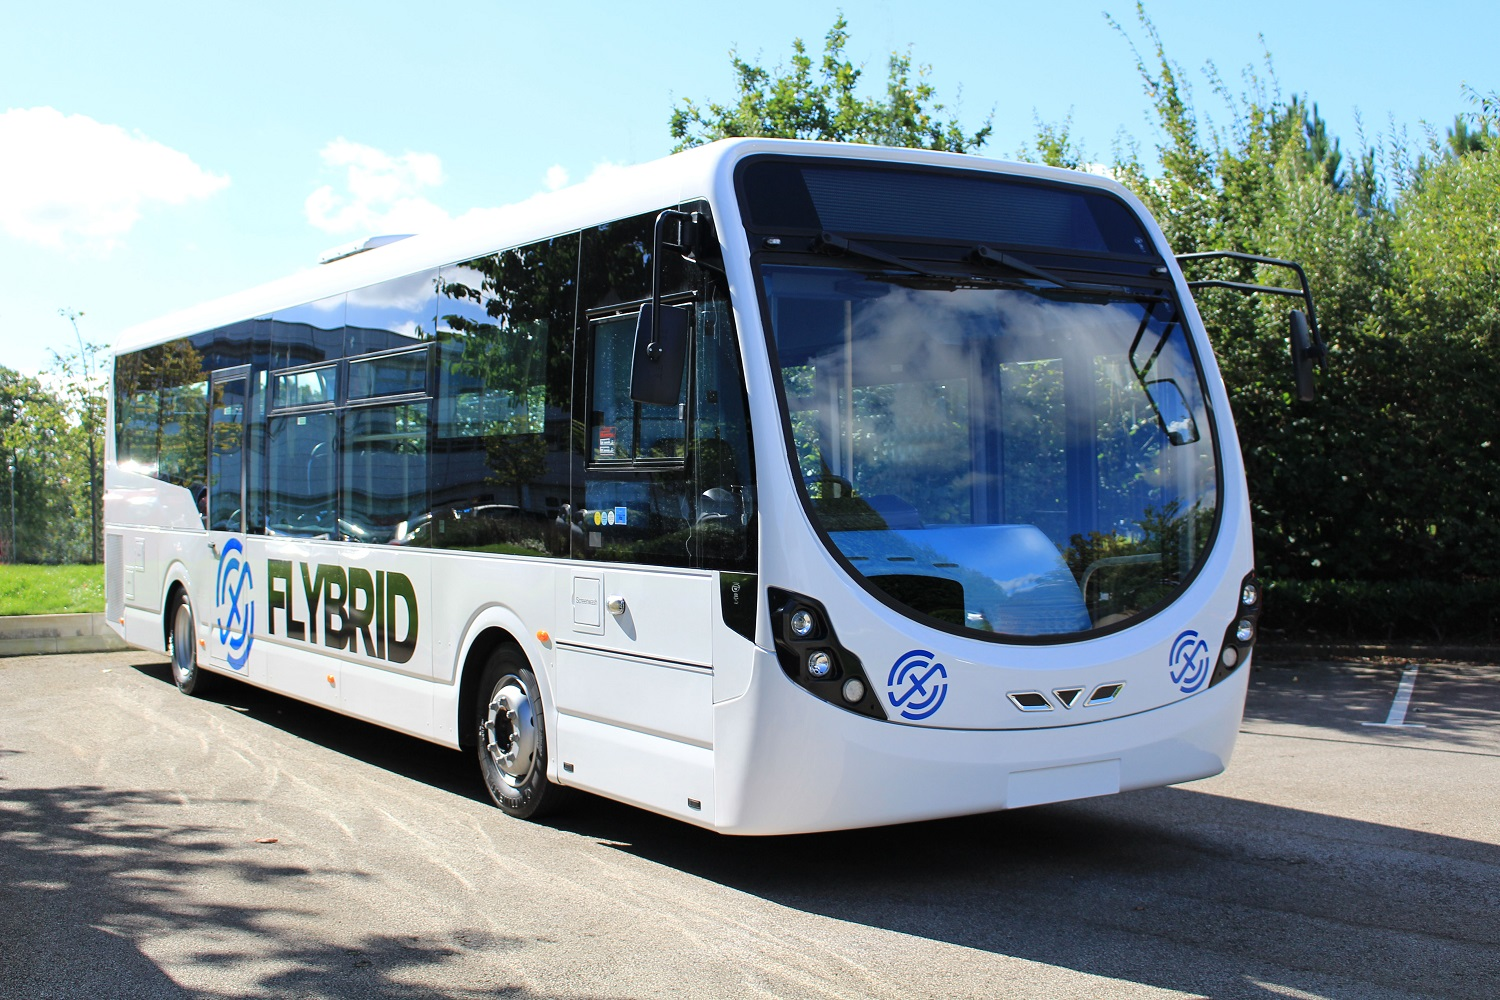 Wrightbus StreetLite fitted with a Flybrid Energy Recovery System